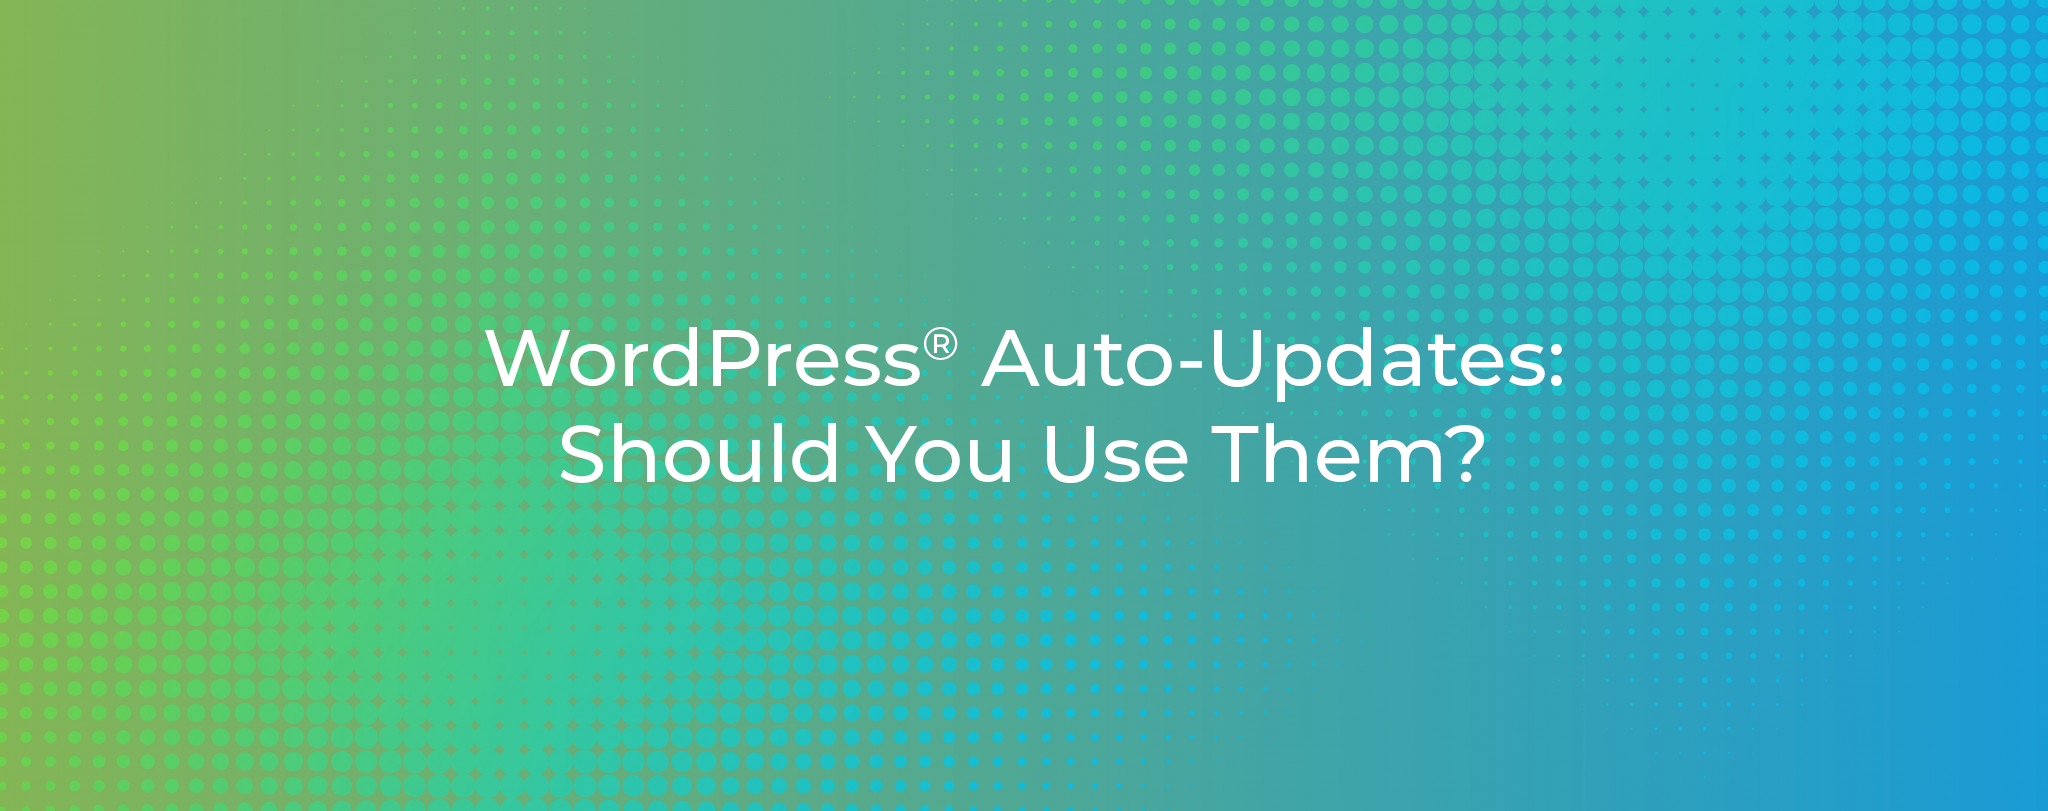 WordPress Auto Updates Should You Use Them